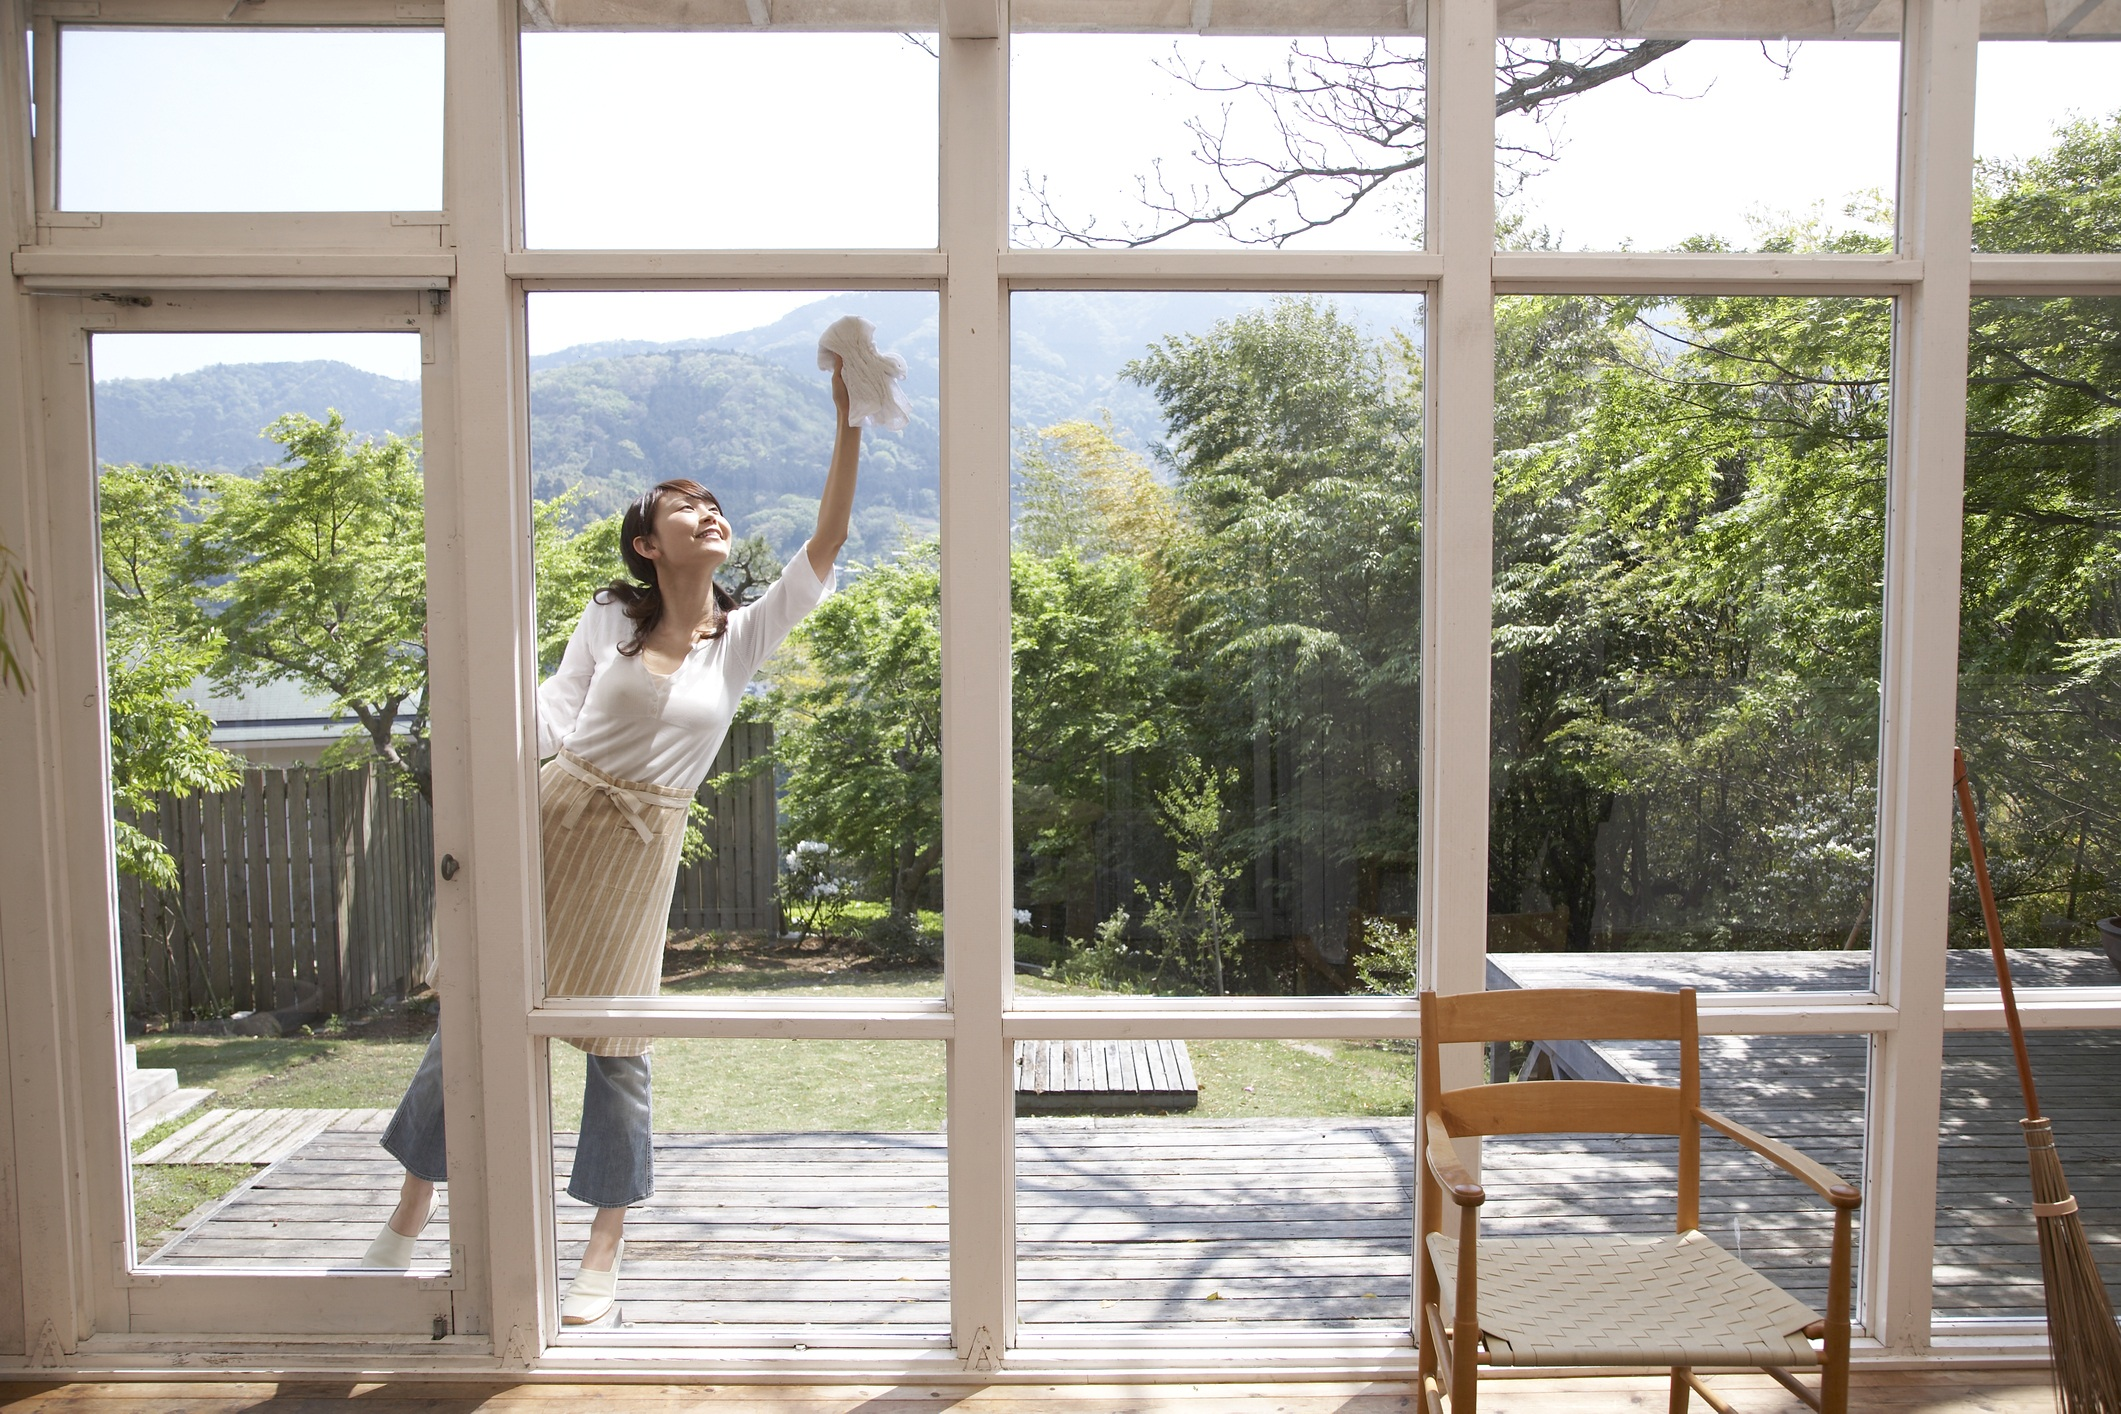 How To Clean House Windows - Cleaning window